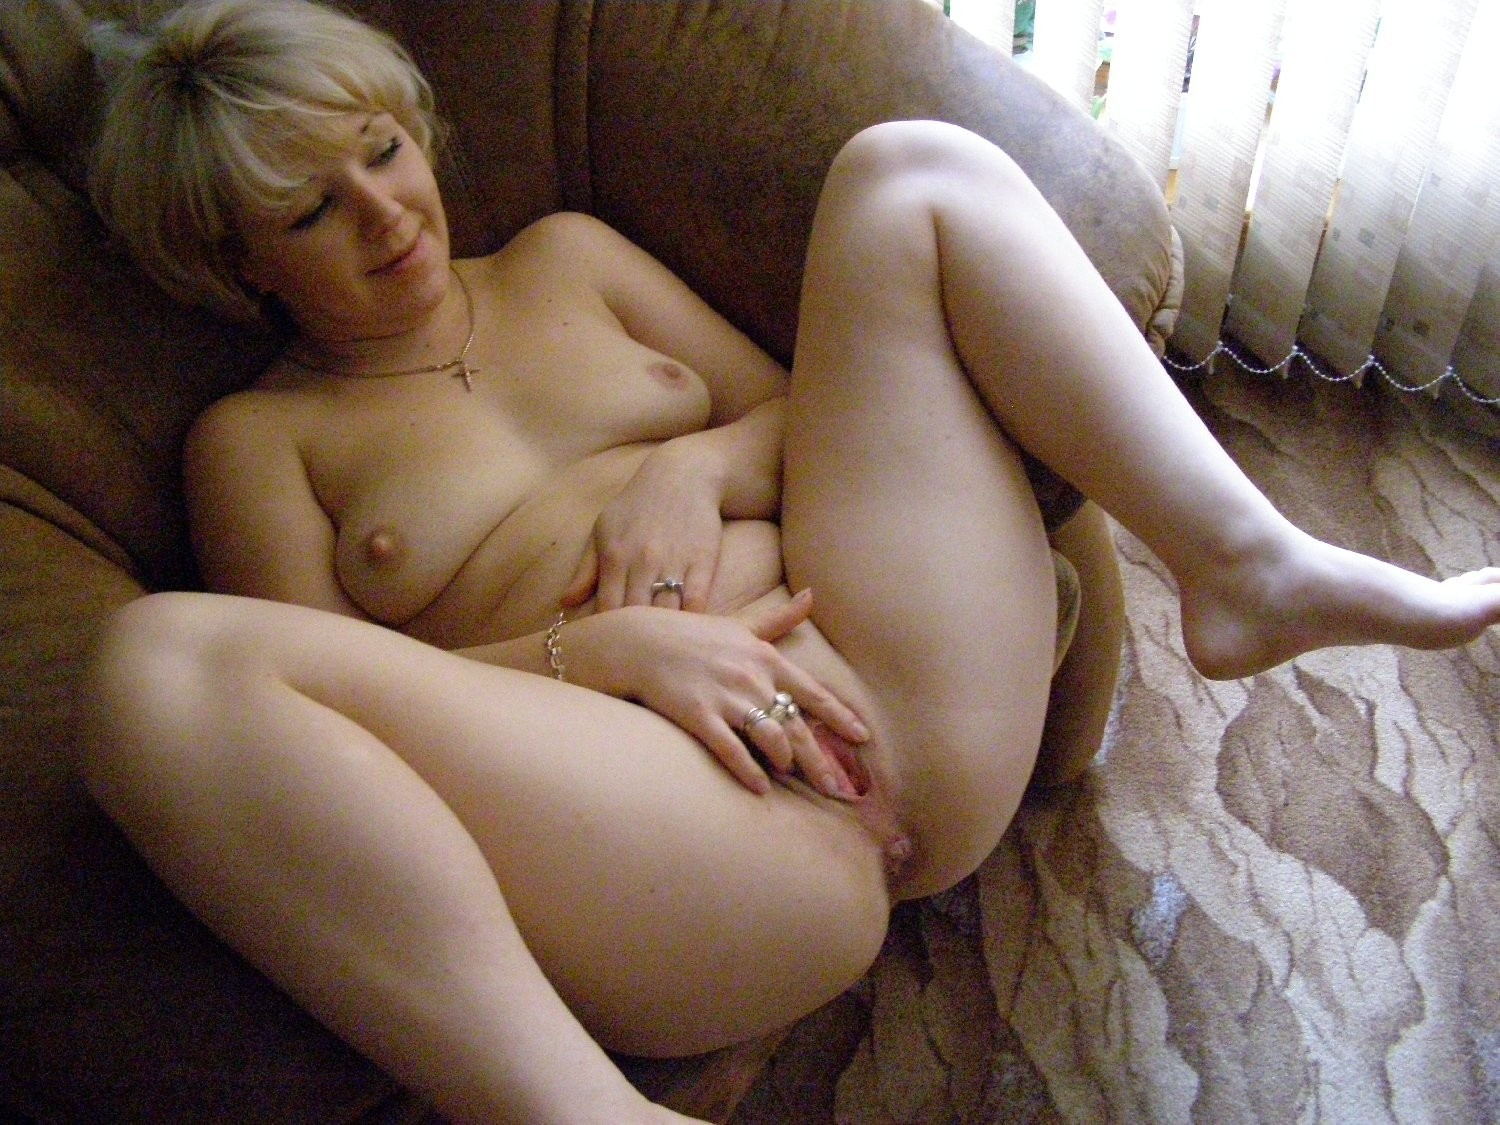 Busty milf 40 plus masturbating bvr 2